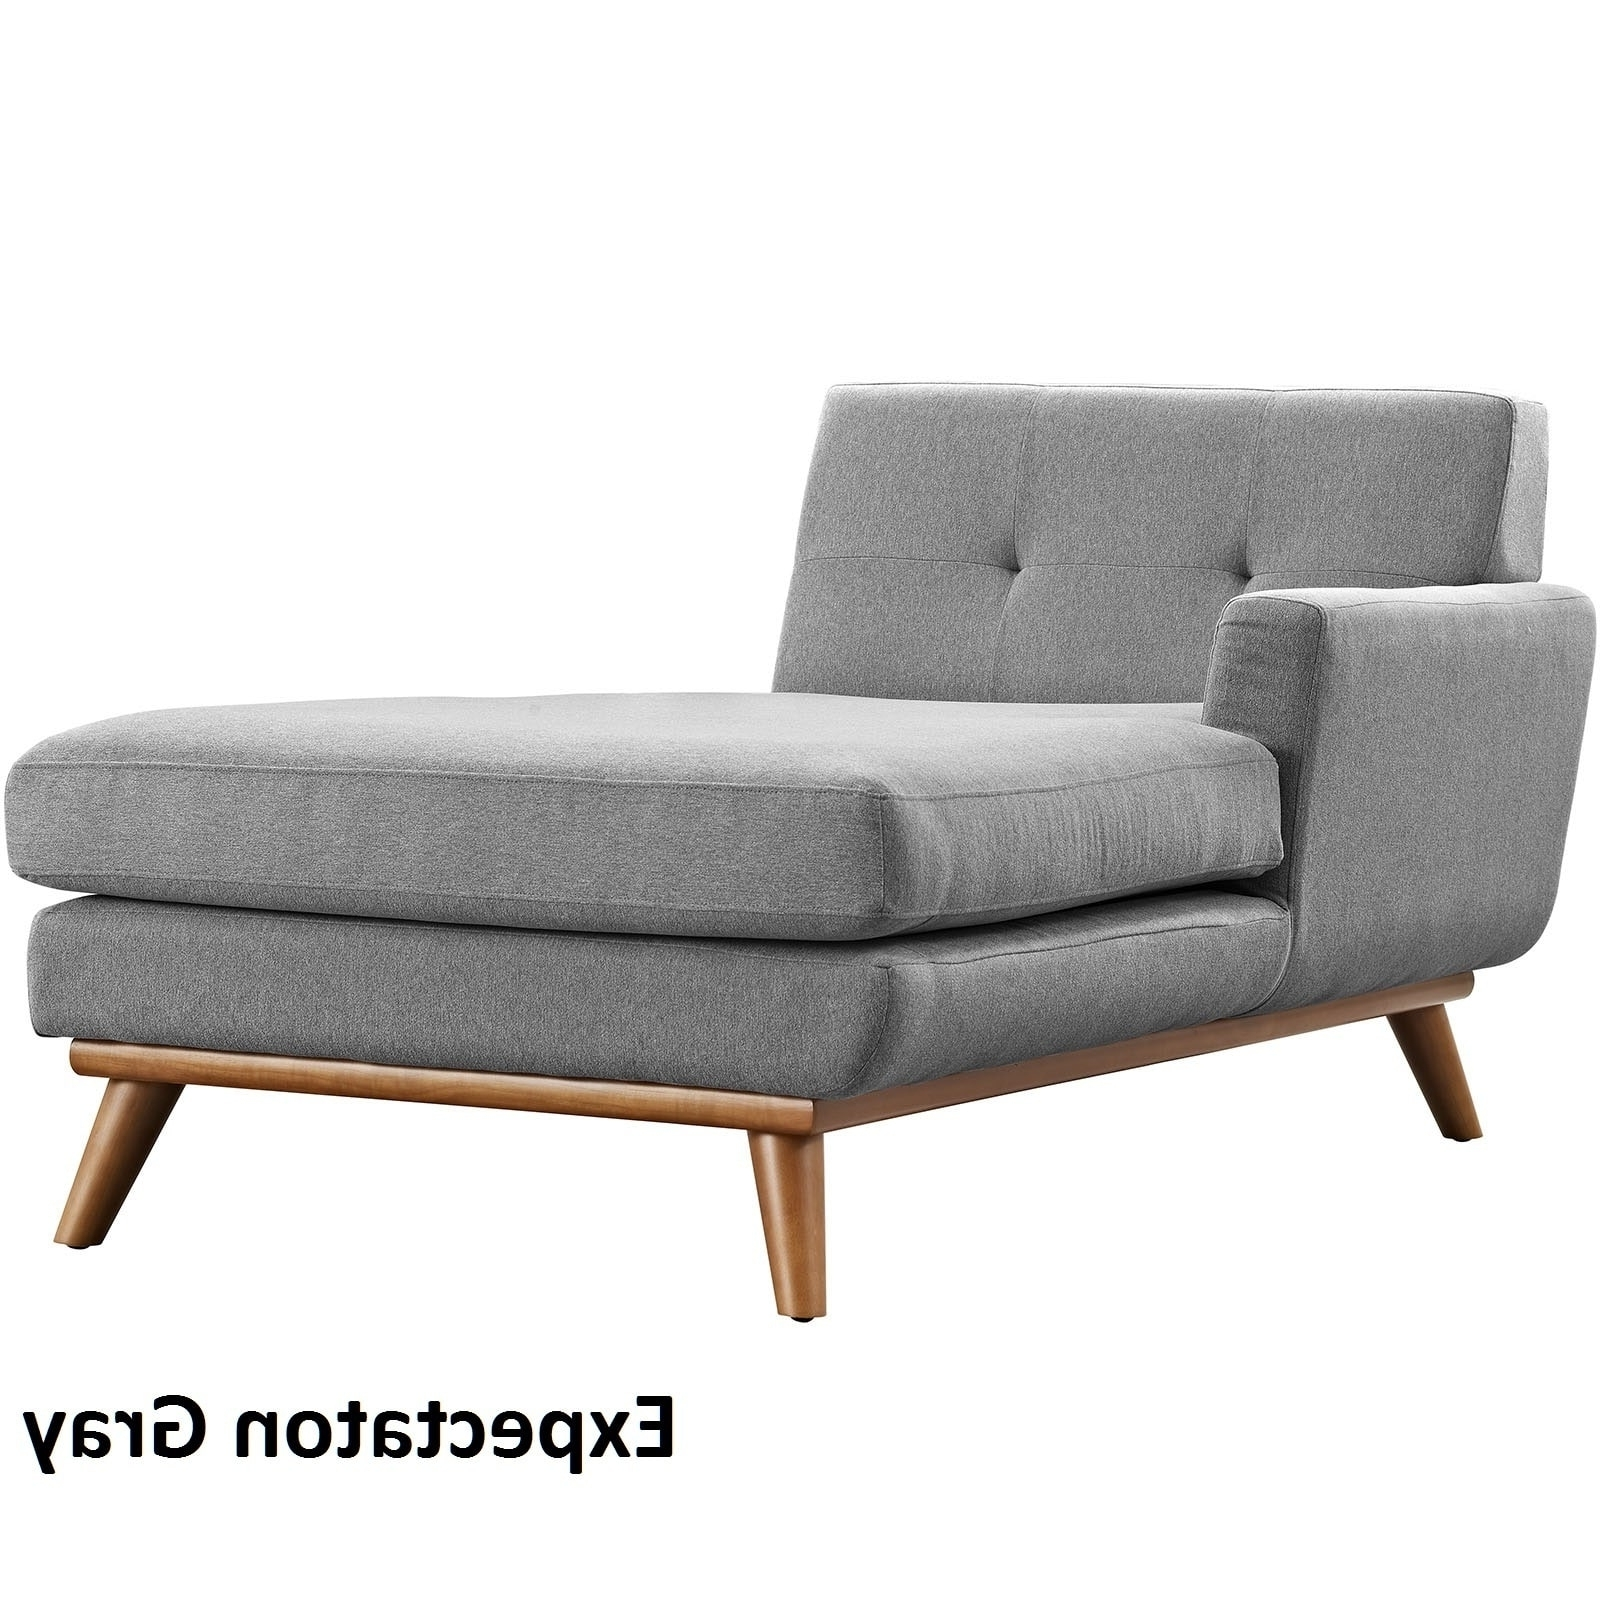 Engage Left Arm Mid Century Chaise Lounge – Free Shipping Today Intended For Most Popular Right Arm Chaise Lounges (View 2 of 15)